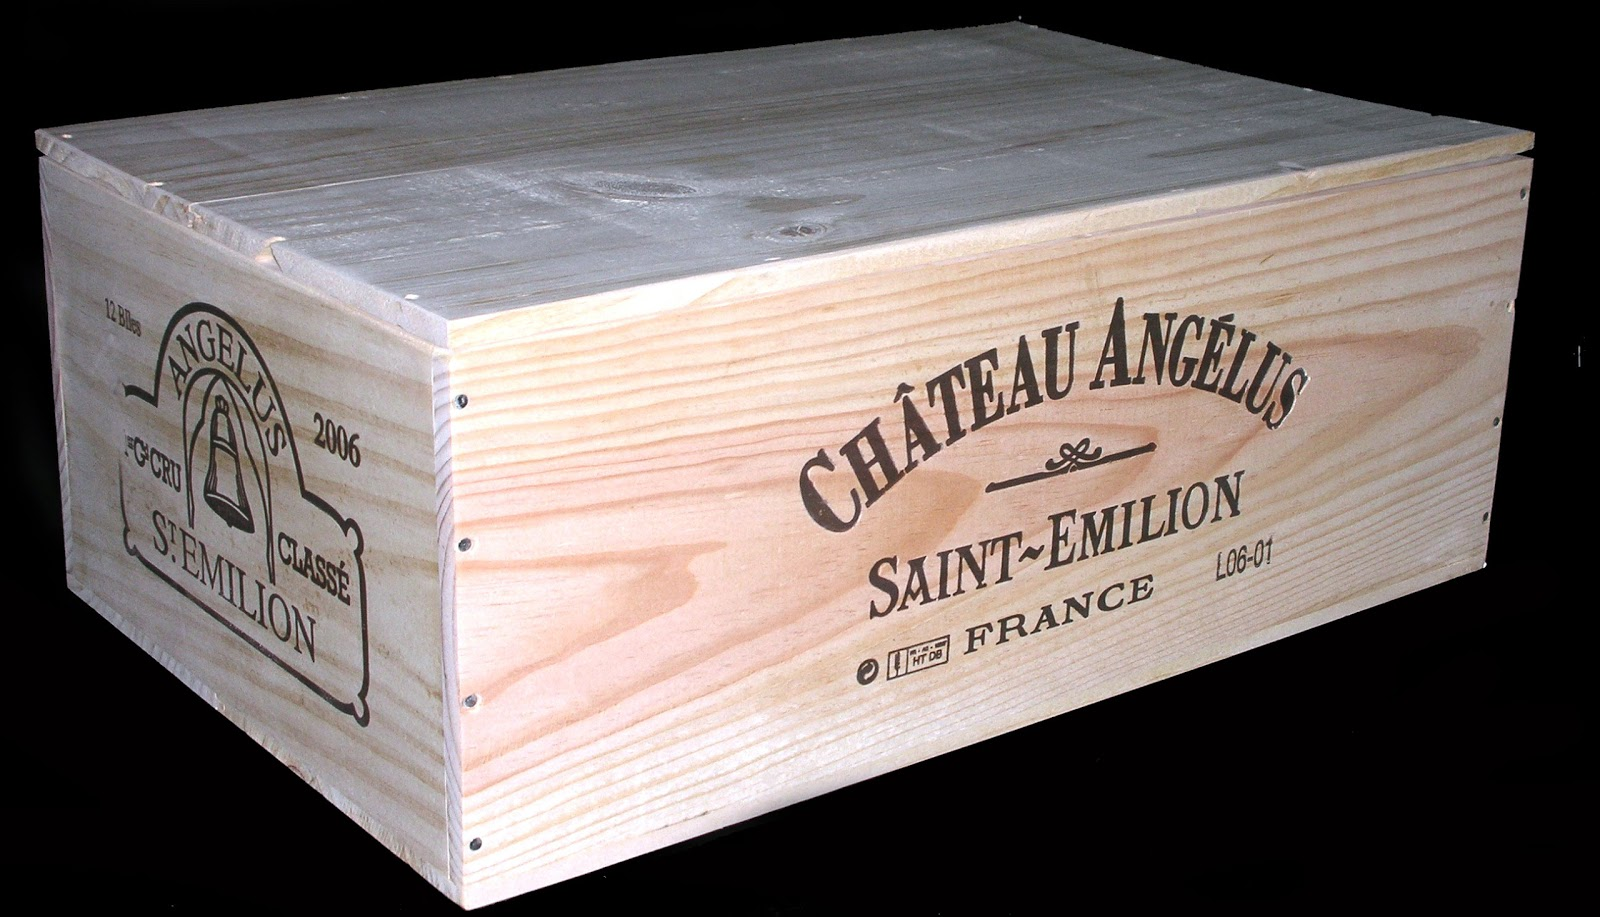 The Chateau Angelus is actually a crate from Bordeaux. Not Burgundy. This  is an example of how wooden wine box designs and descriptions can be subtle.